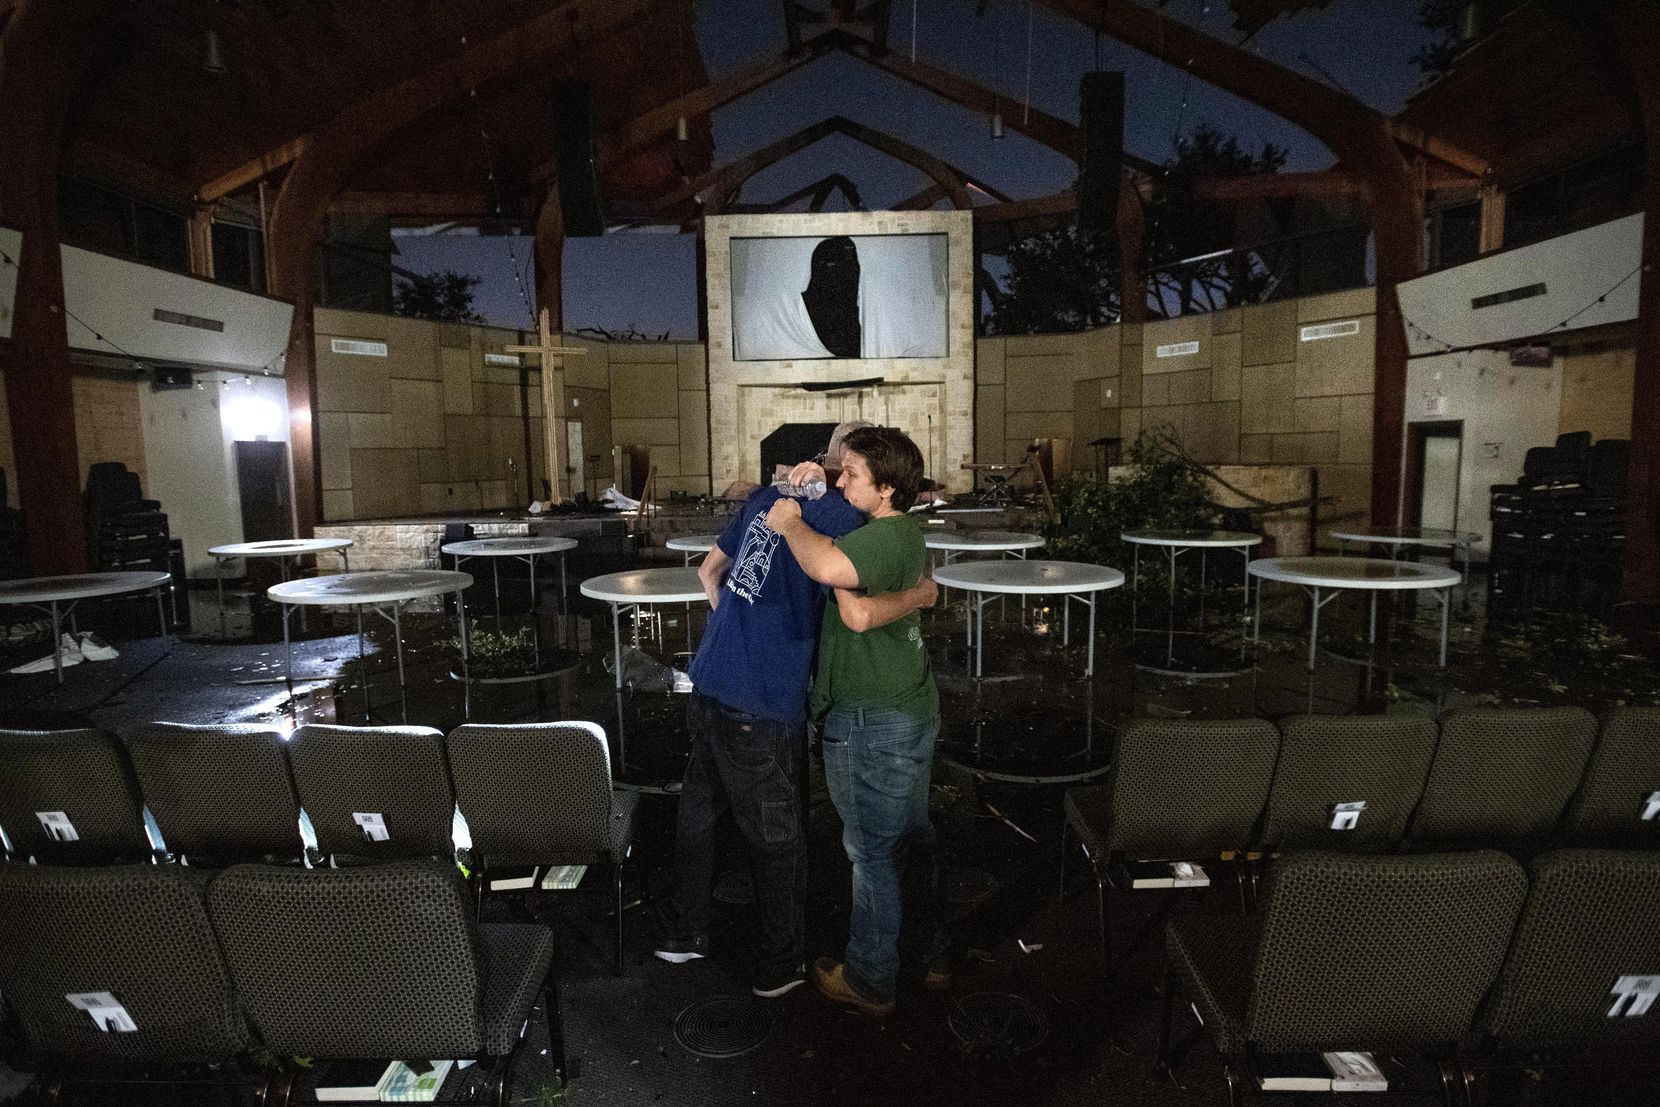 In the moments after the tornado tore through northwest Dallas, Northway Church member Jeffrey McWhorter took this photo of Matt Younger, right, a pastor at Northway Church, embracing facilities associate Robert Lusk in their church's severely damaged sanctuary.